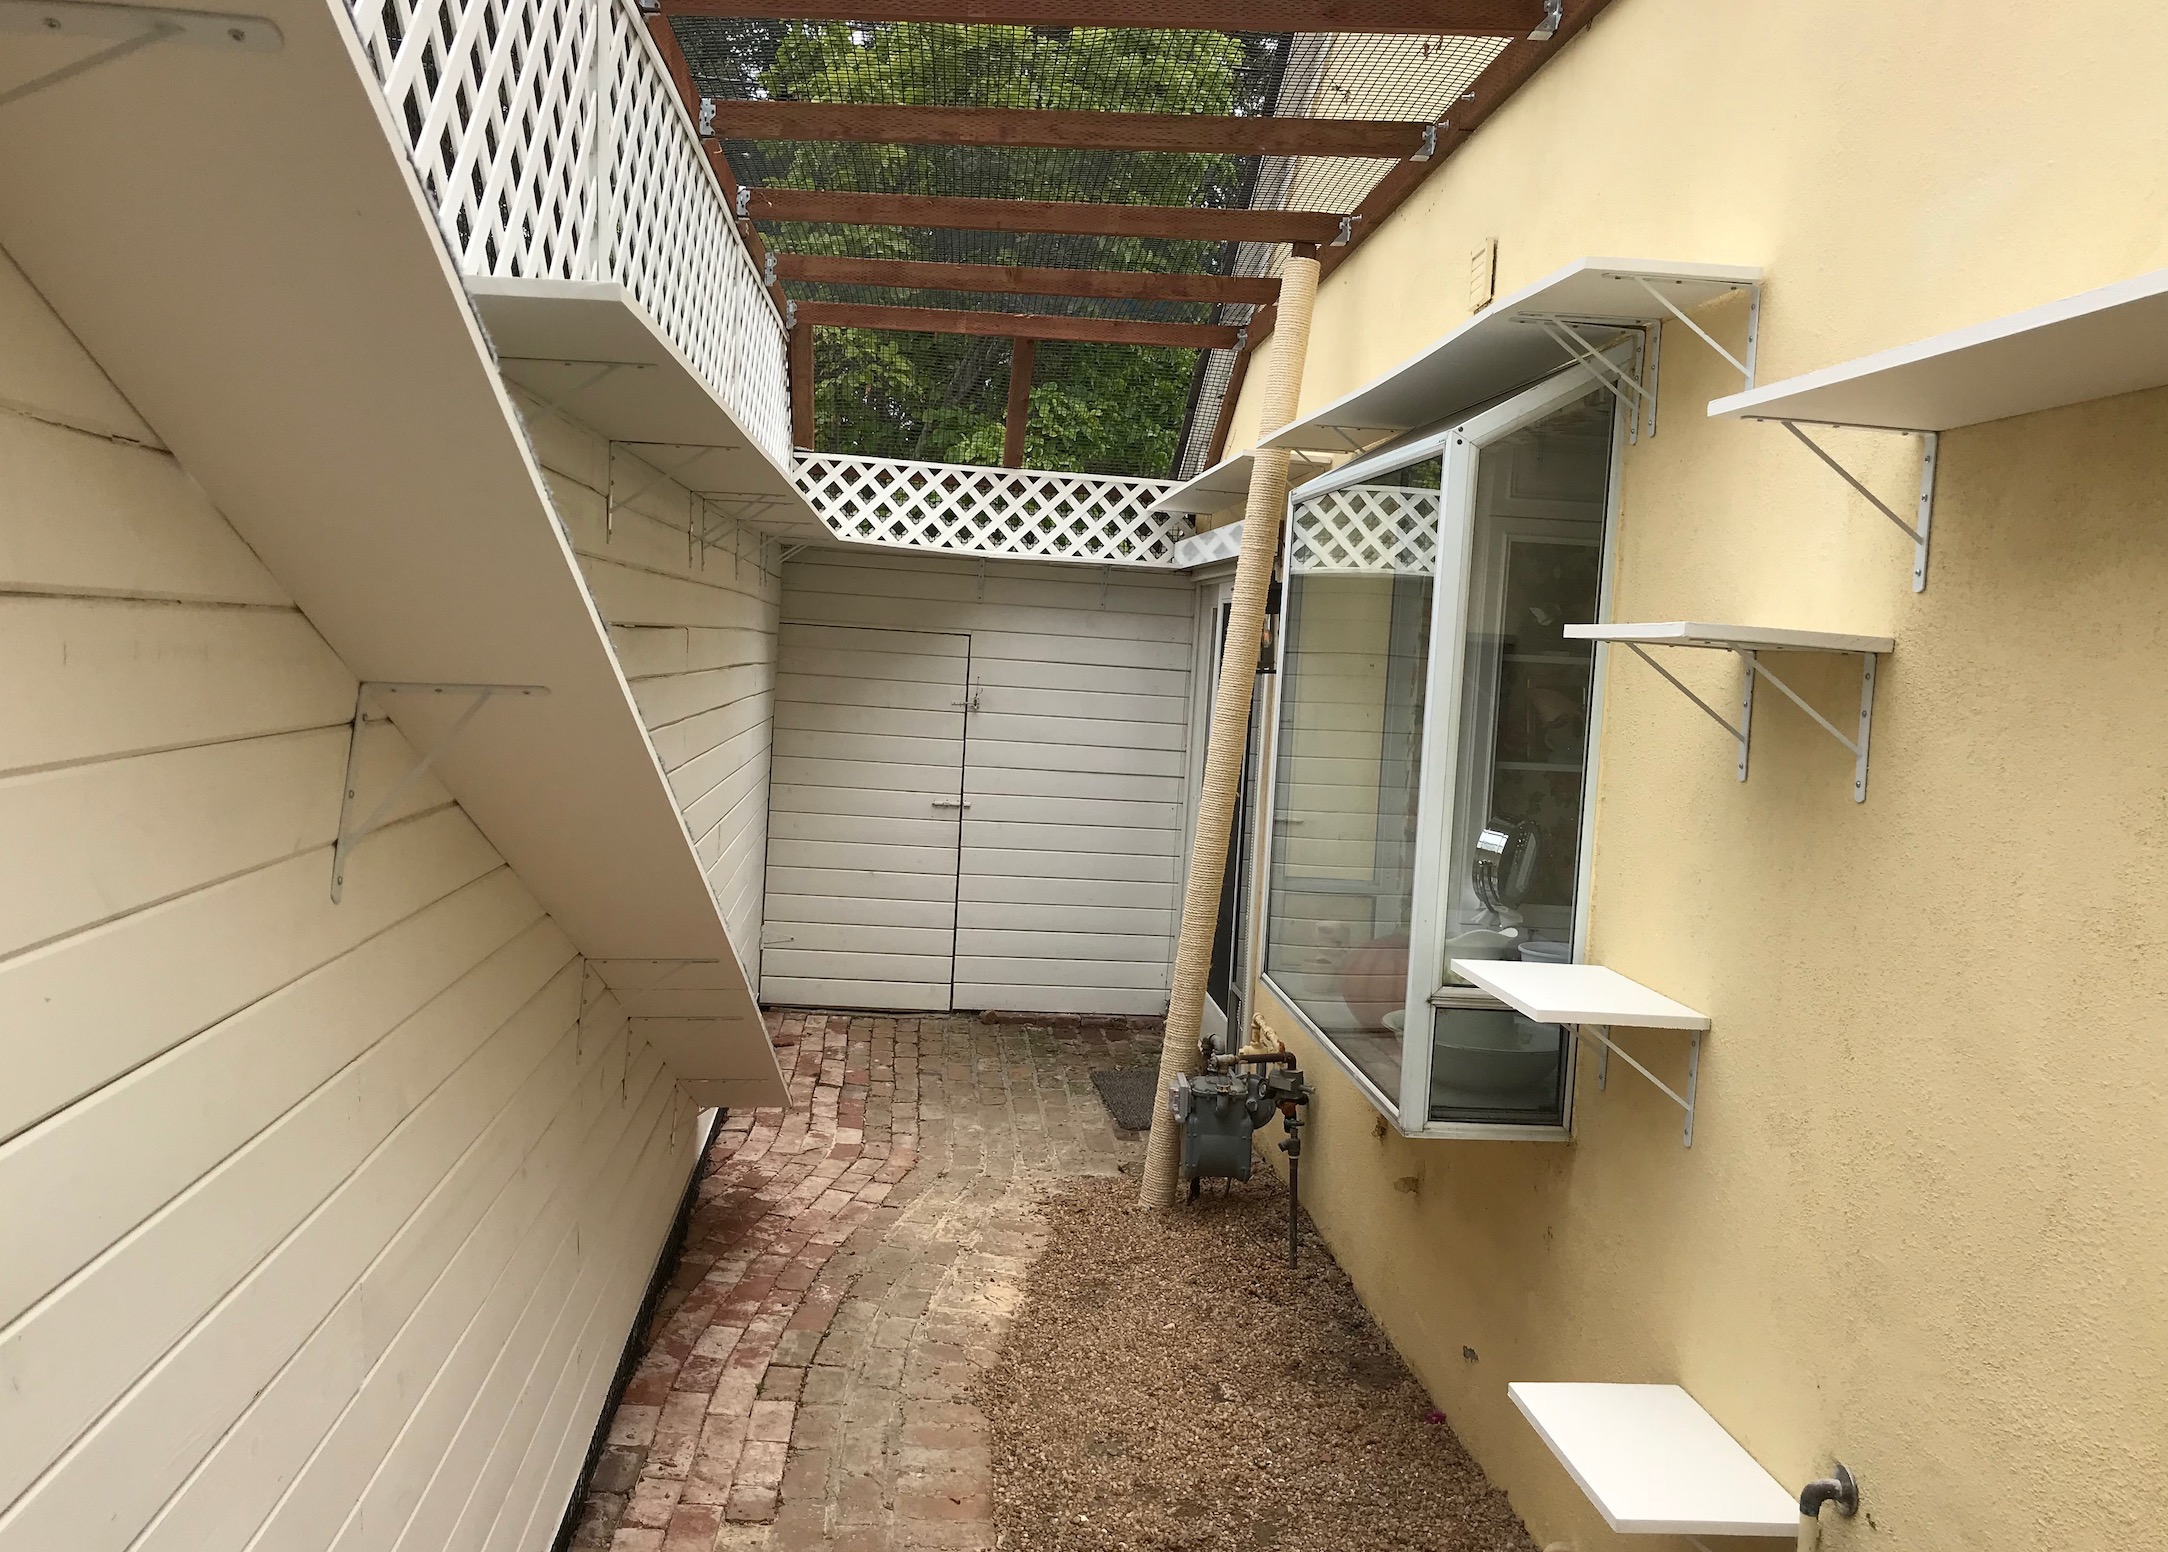 Bel-Air Catio Rear View